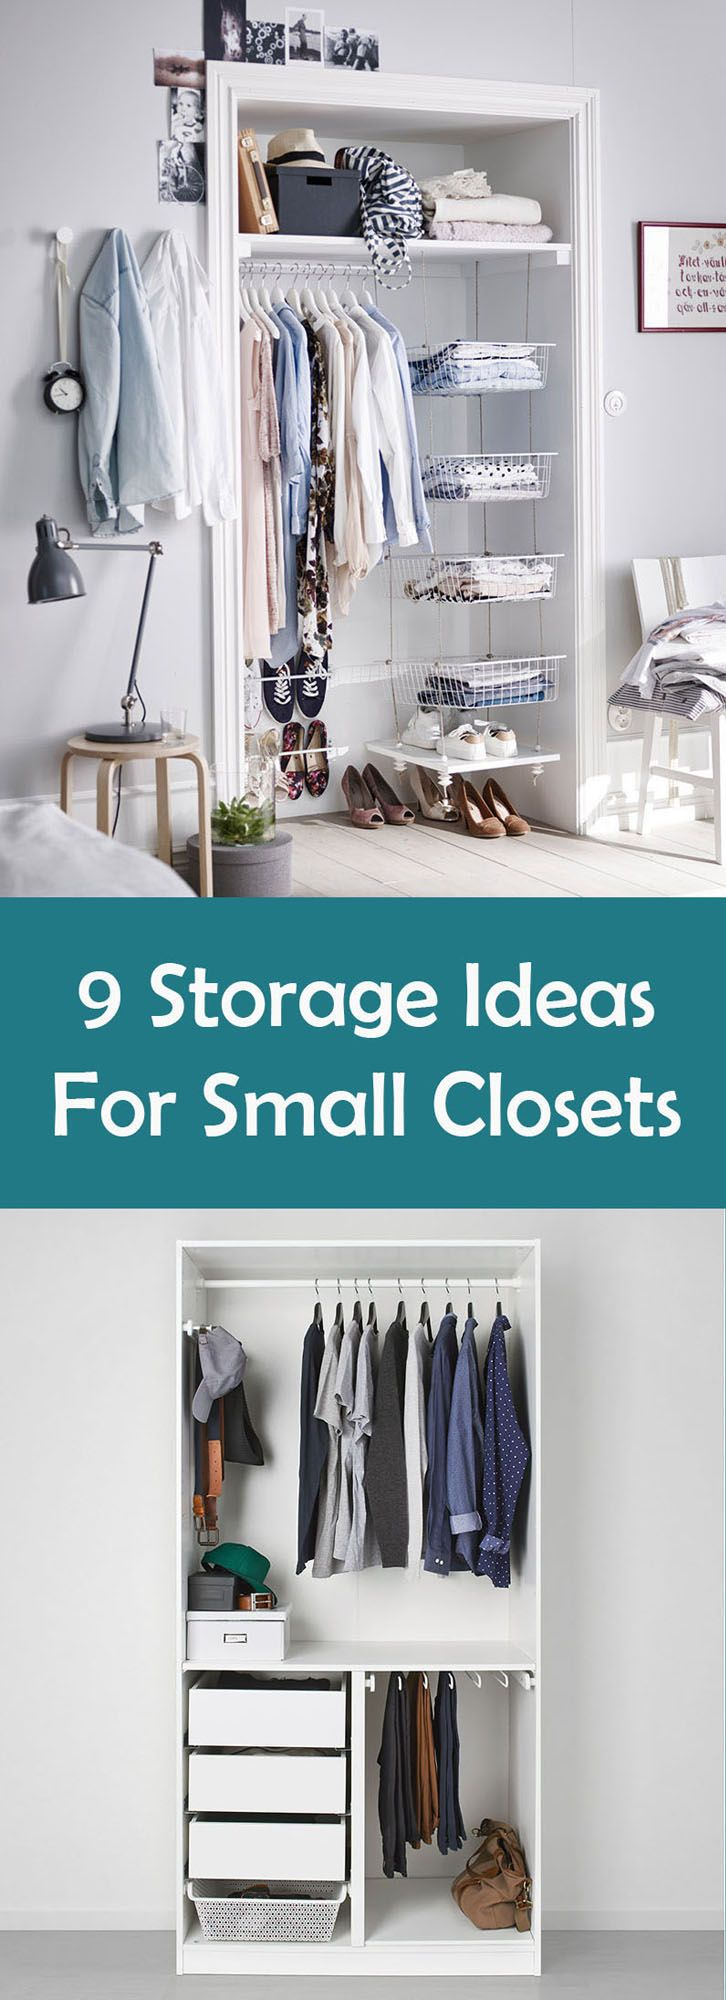 25 best ideas about small closets on pinterest small Best wardrobe storage solutions